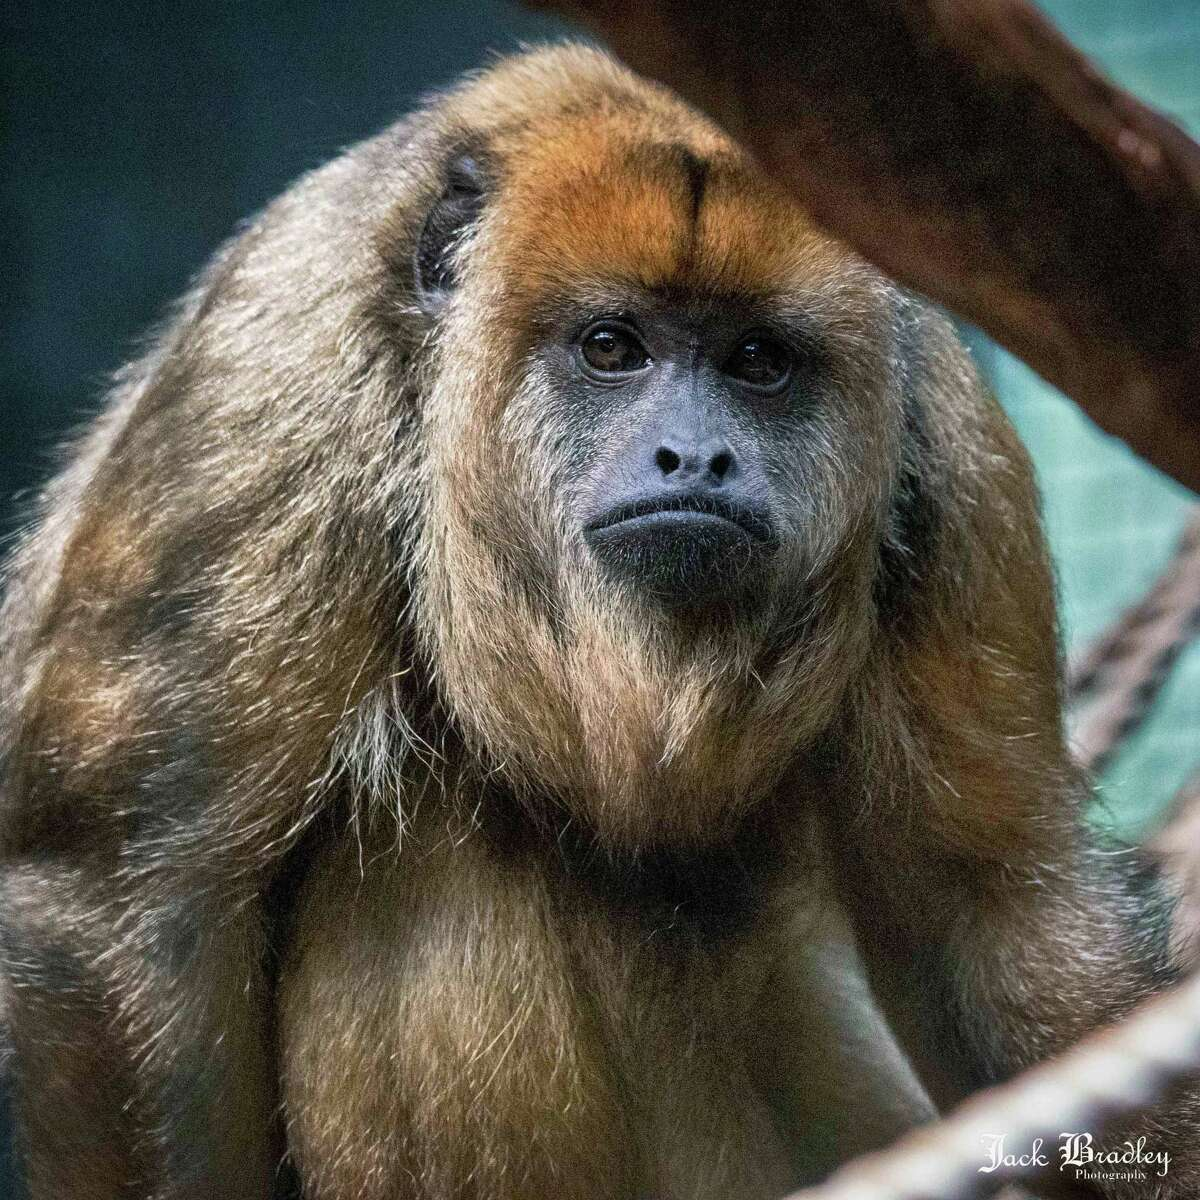 Two sister howler monkeys have moved from Texas to the Beardsley Zoo in Bridgeport, Conn., joining to the zoo's current howler monkey, Cain, who lost his two previous companions to old age.